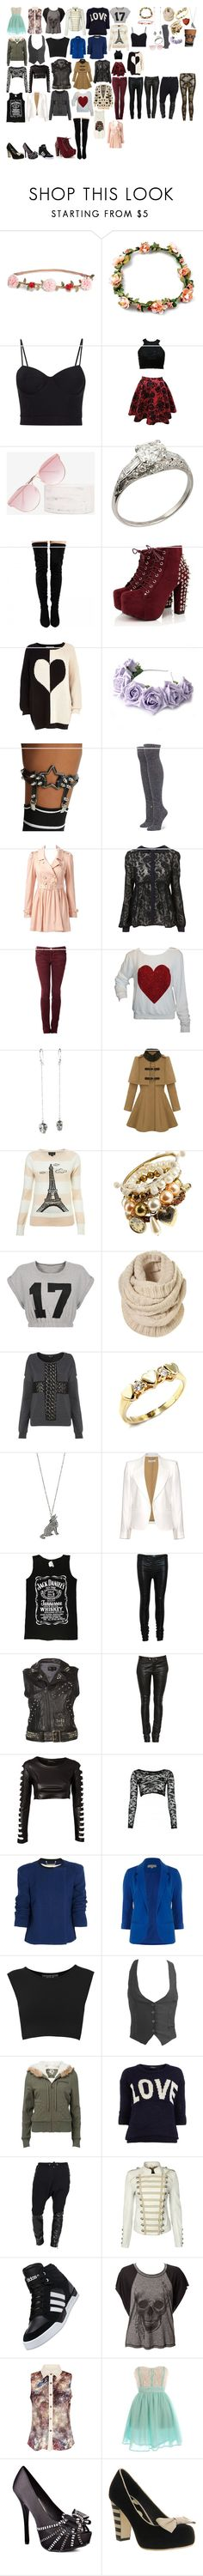 """Packing for oppas"" by royalsinthedark ❤ liked on Polyvore featuring H&M, Alexander Wang, Quay, River Island, LOTTA, Hot Topic, Stance, Forever New, Current/Elliott and Wildfox"